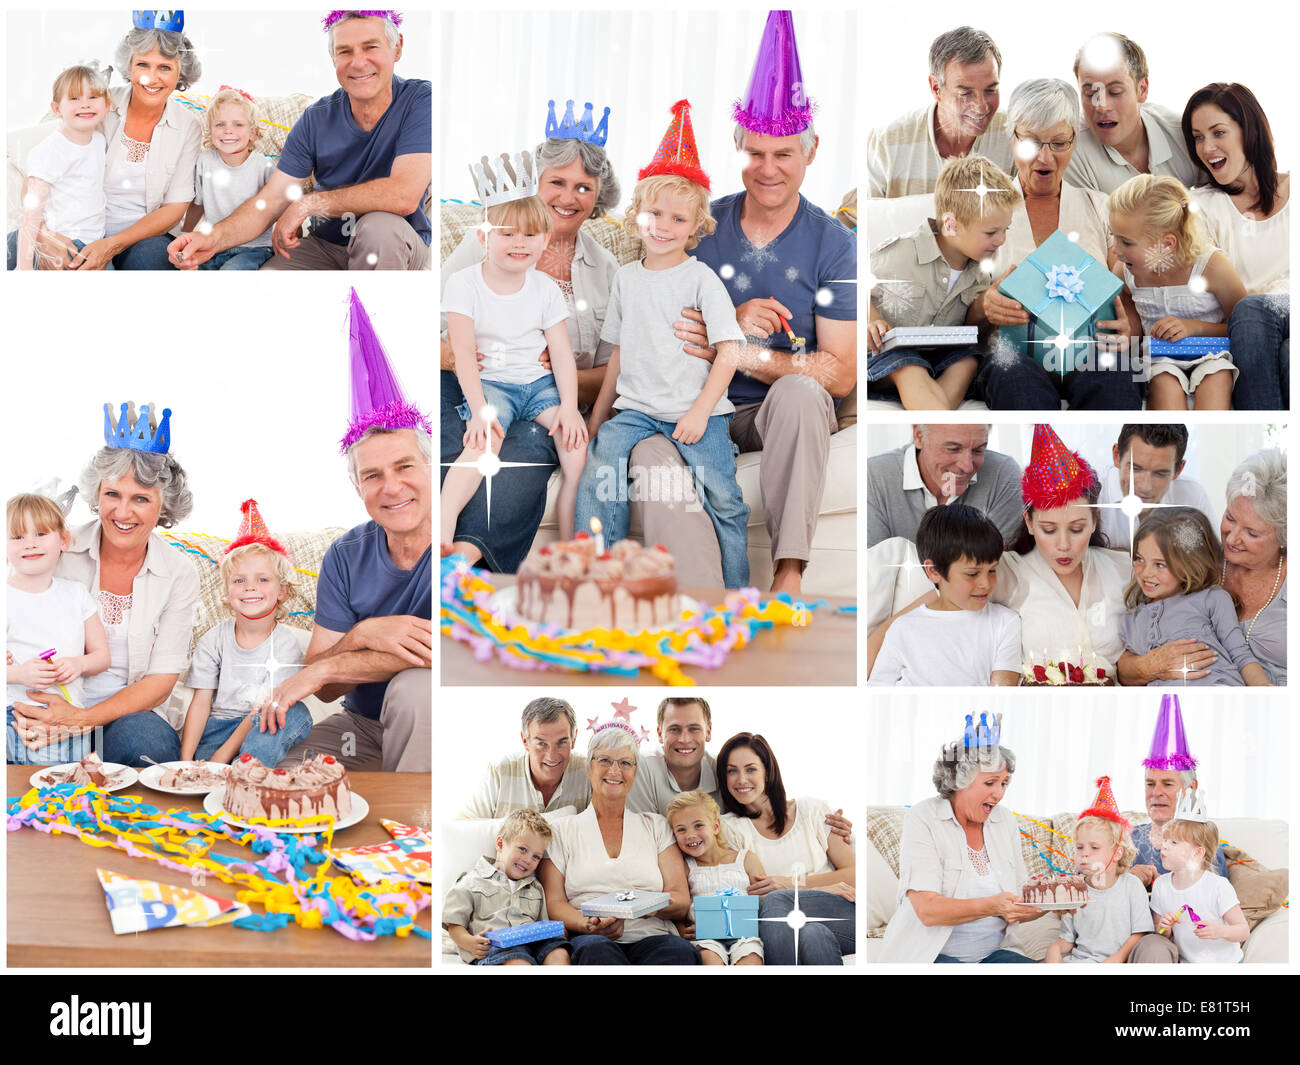 Collage of families enjoying celebration moments together at home Stock Photo